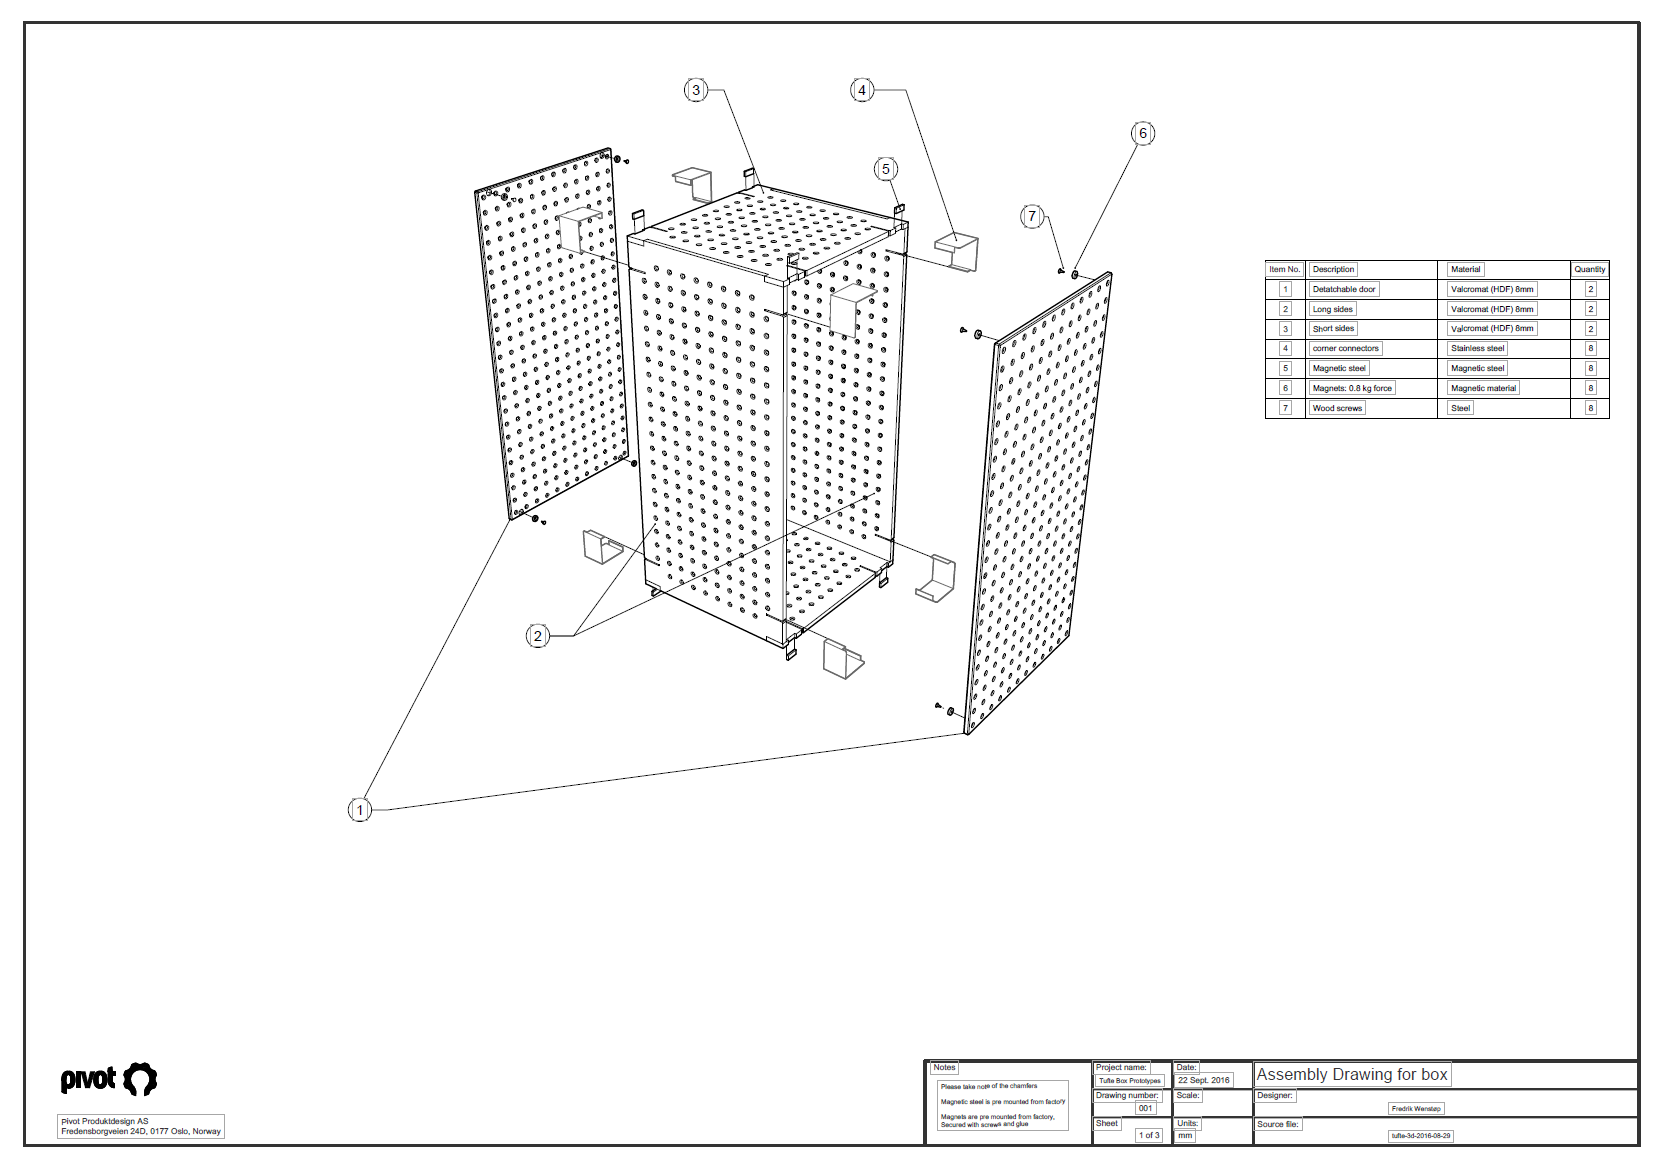 tufte-box-assembly.PNG